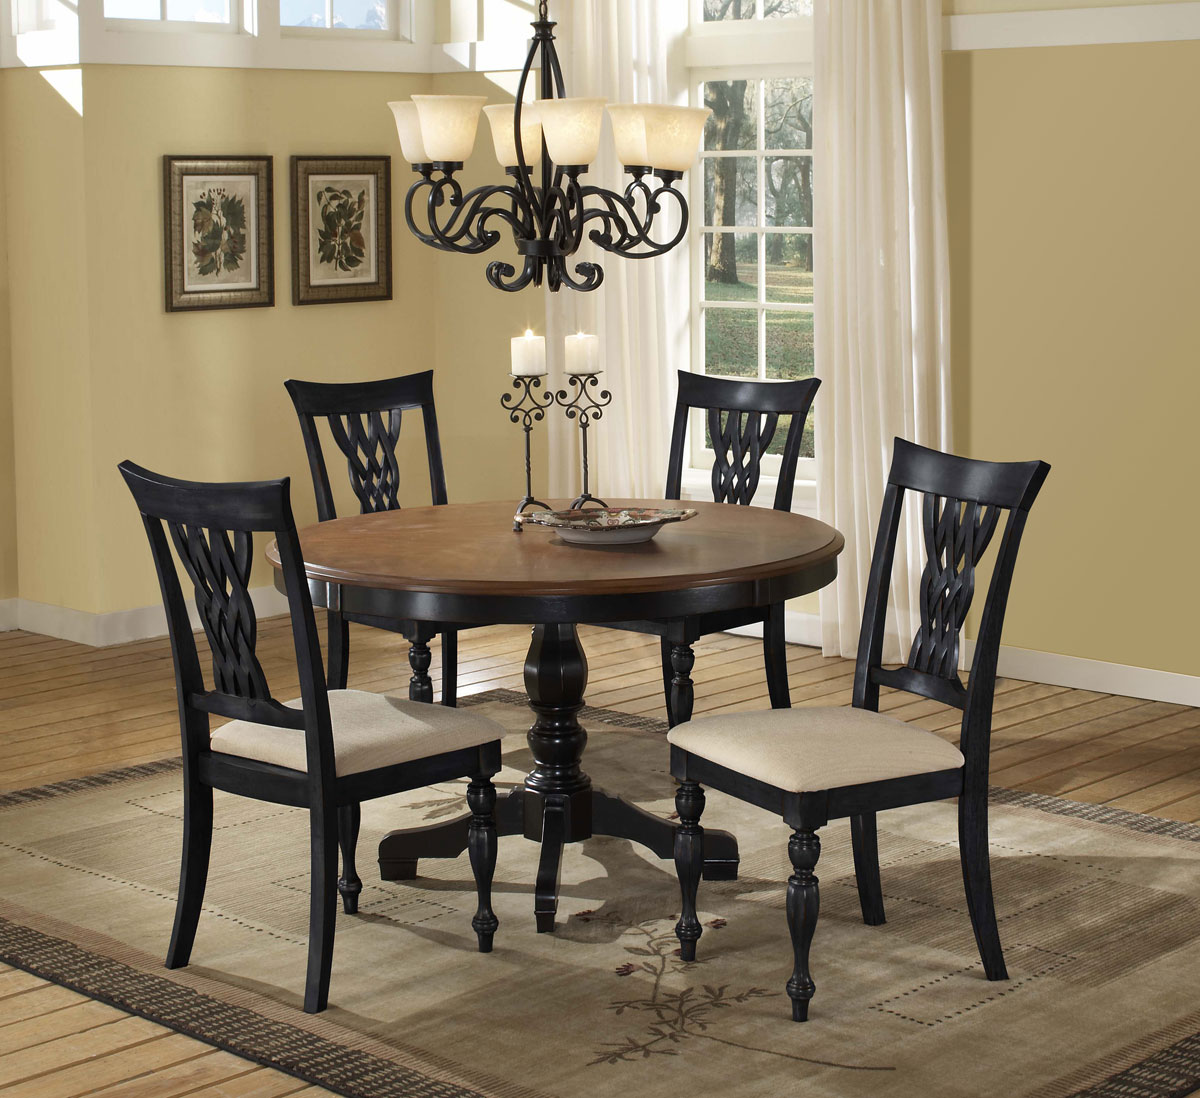 Hillsdale Embassy Round Pedestal Dining Table - Rubbed Black & Cherry